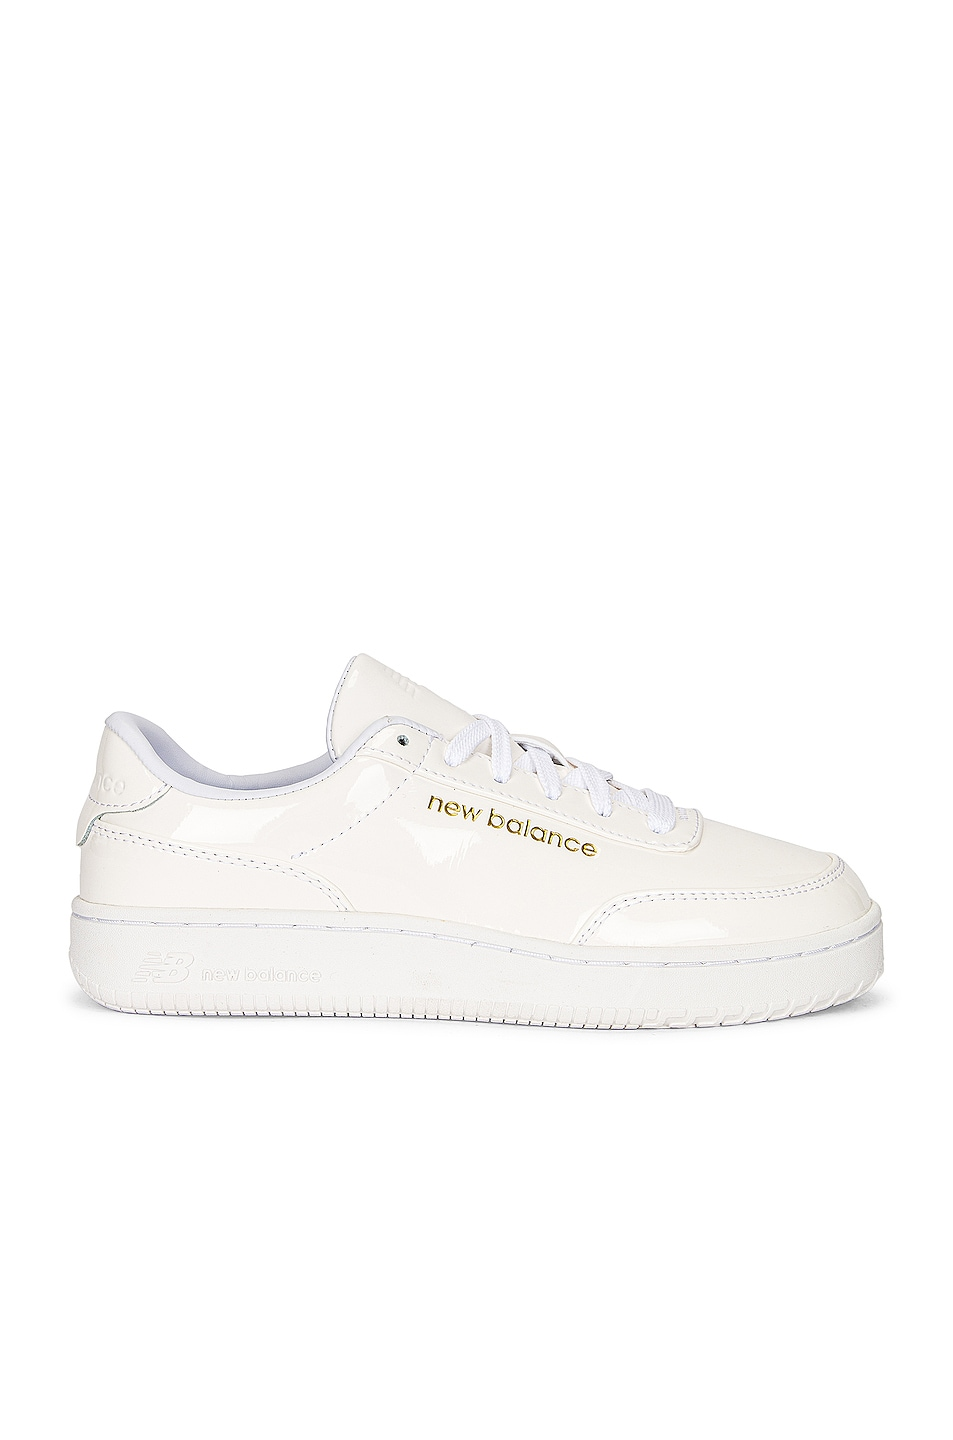 Image 1 of New Balance CTAlley Sneakers in White